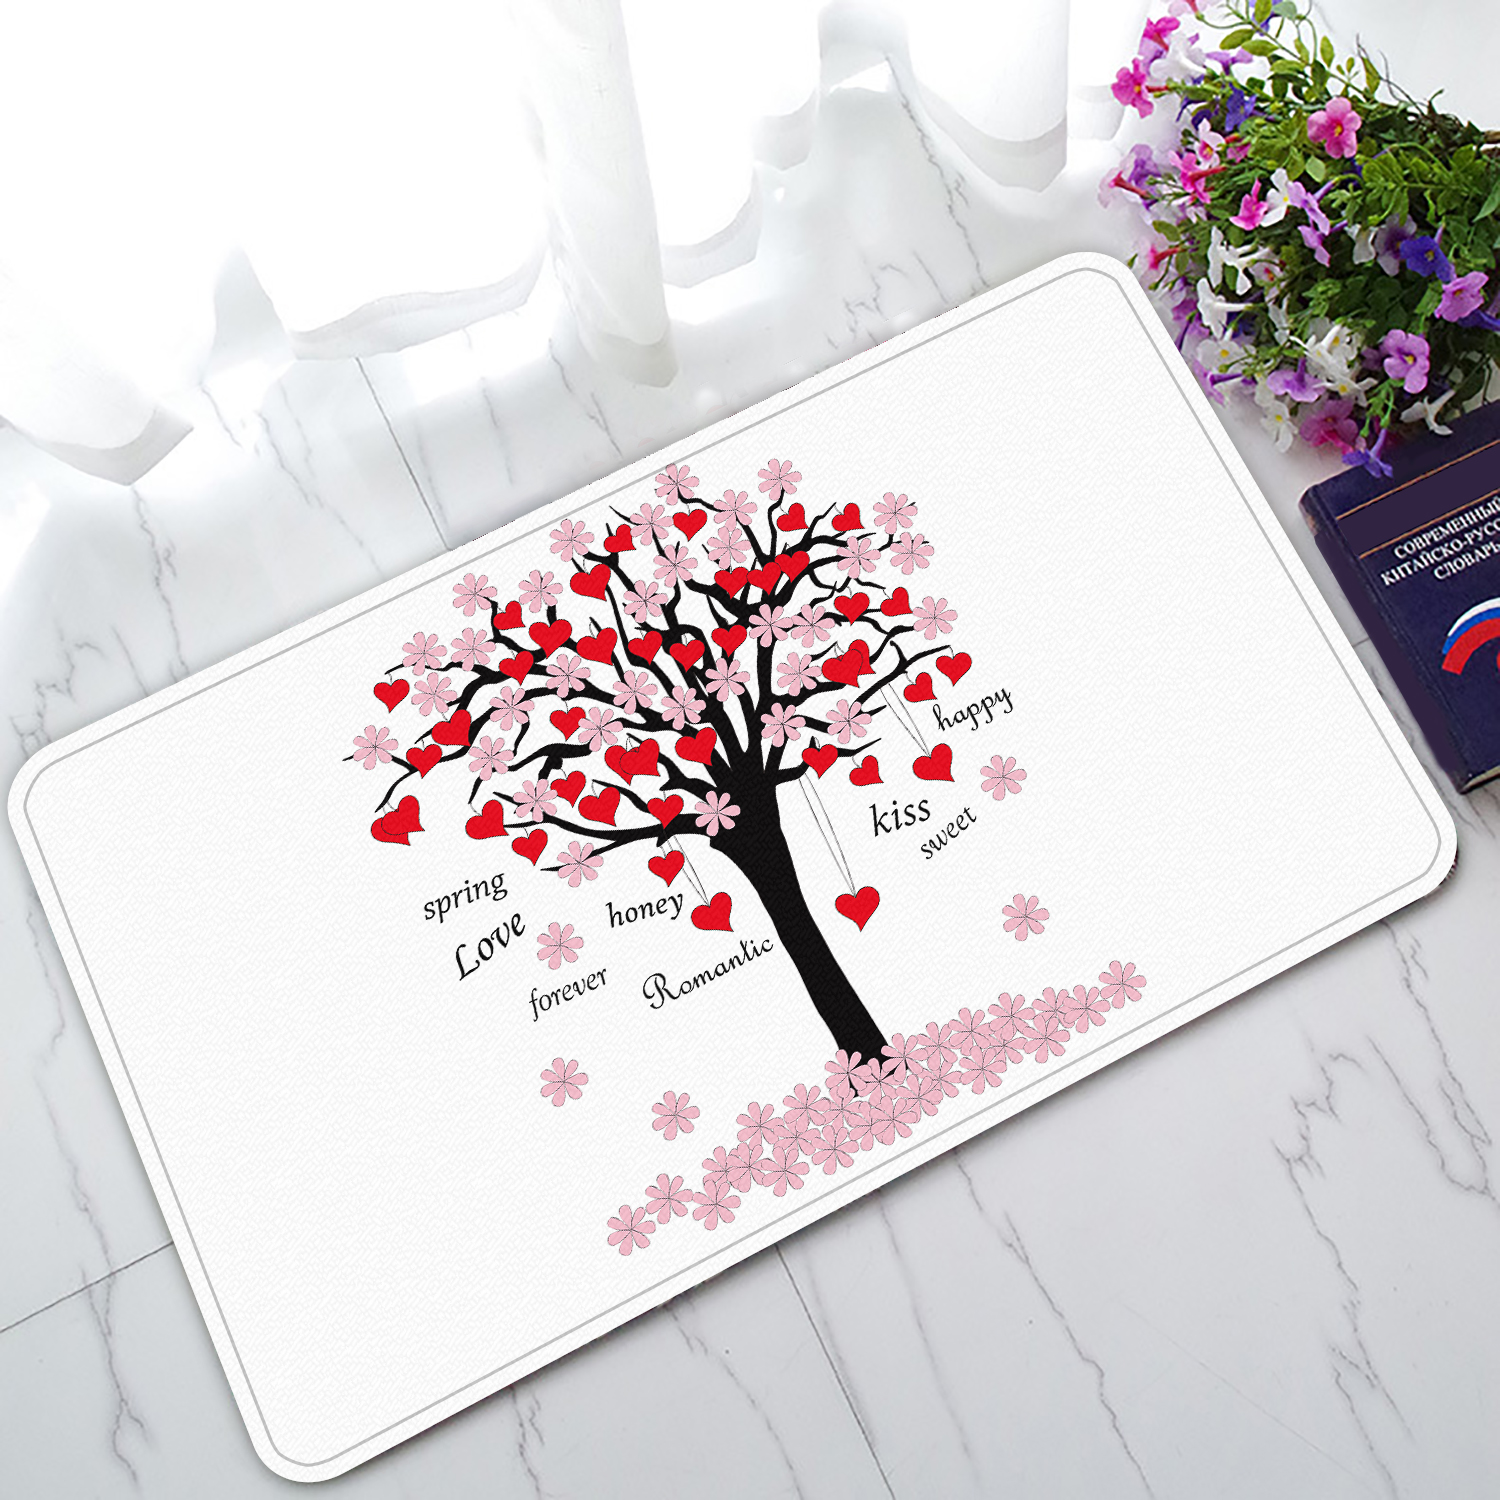 YKCG Spring Tree of Love Pink Red Valentine's Day Doormat Indoor/Outdoor/Bathroom Doormat 30x18 inches